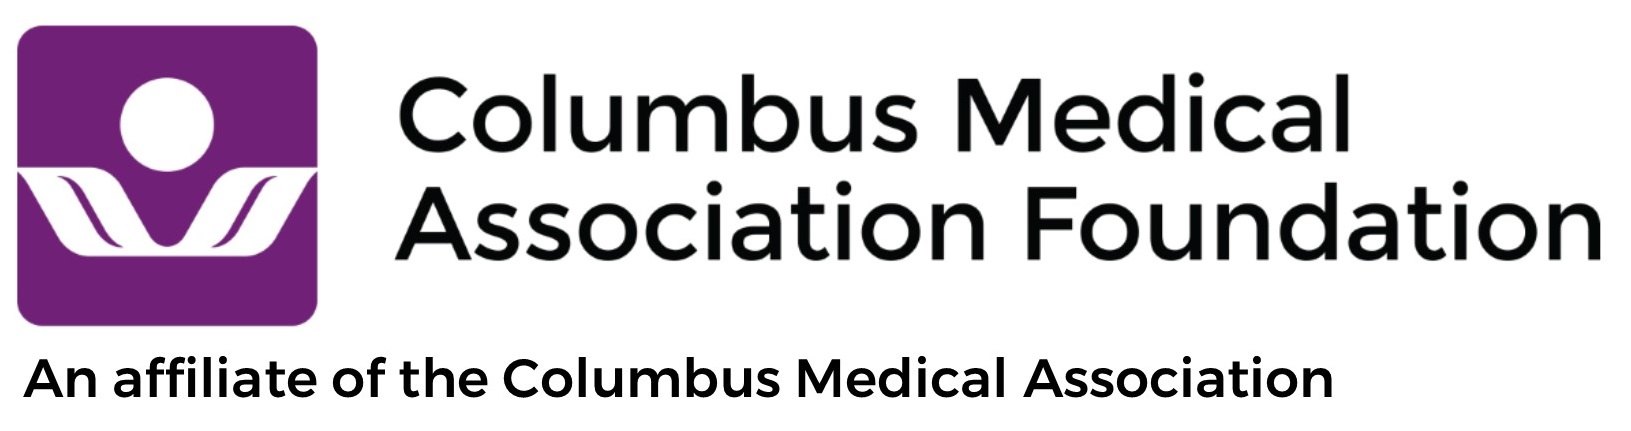 Columbus Medical Association Foundation